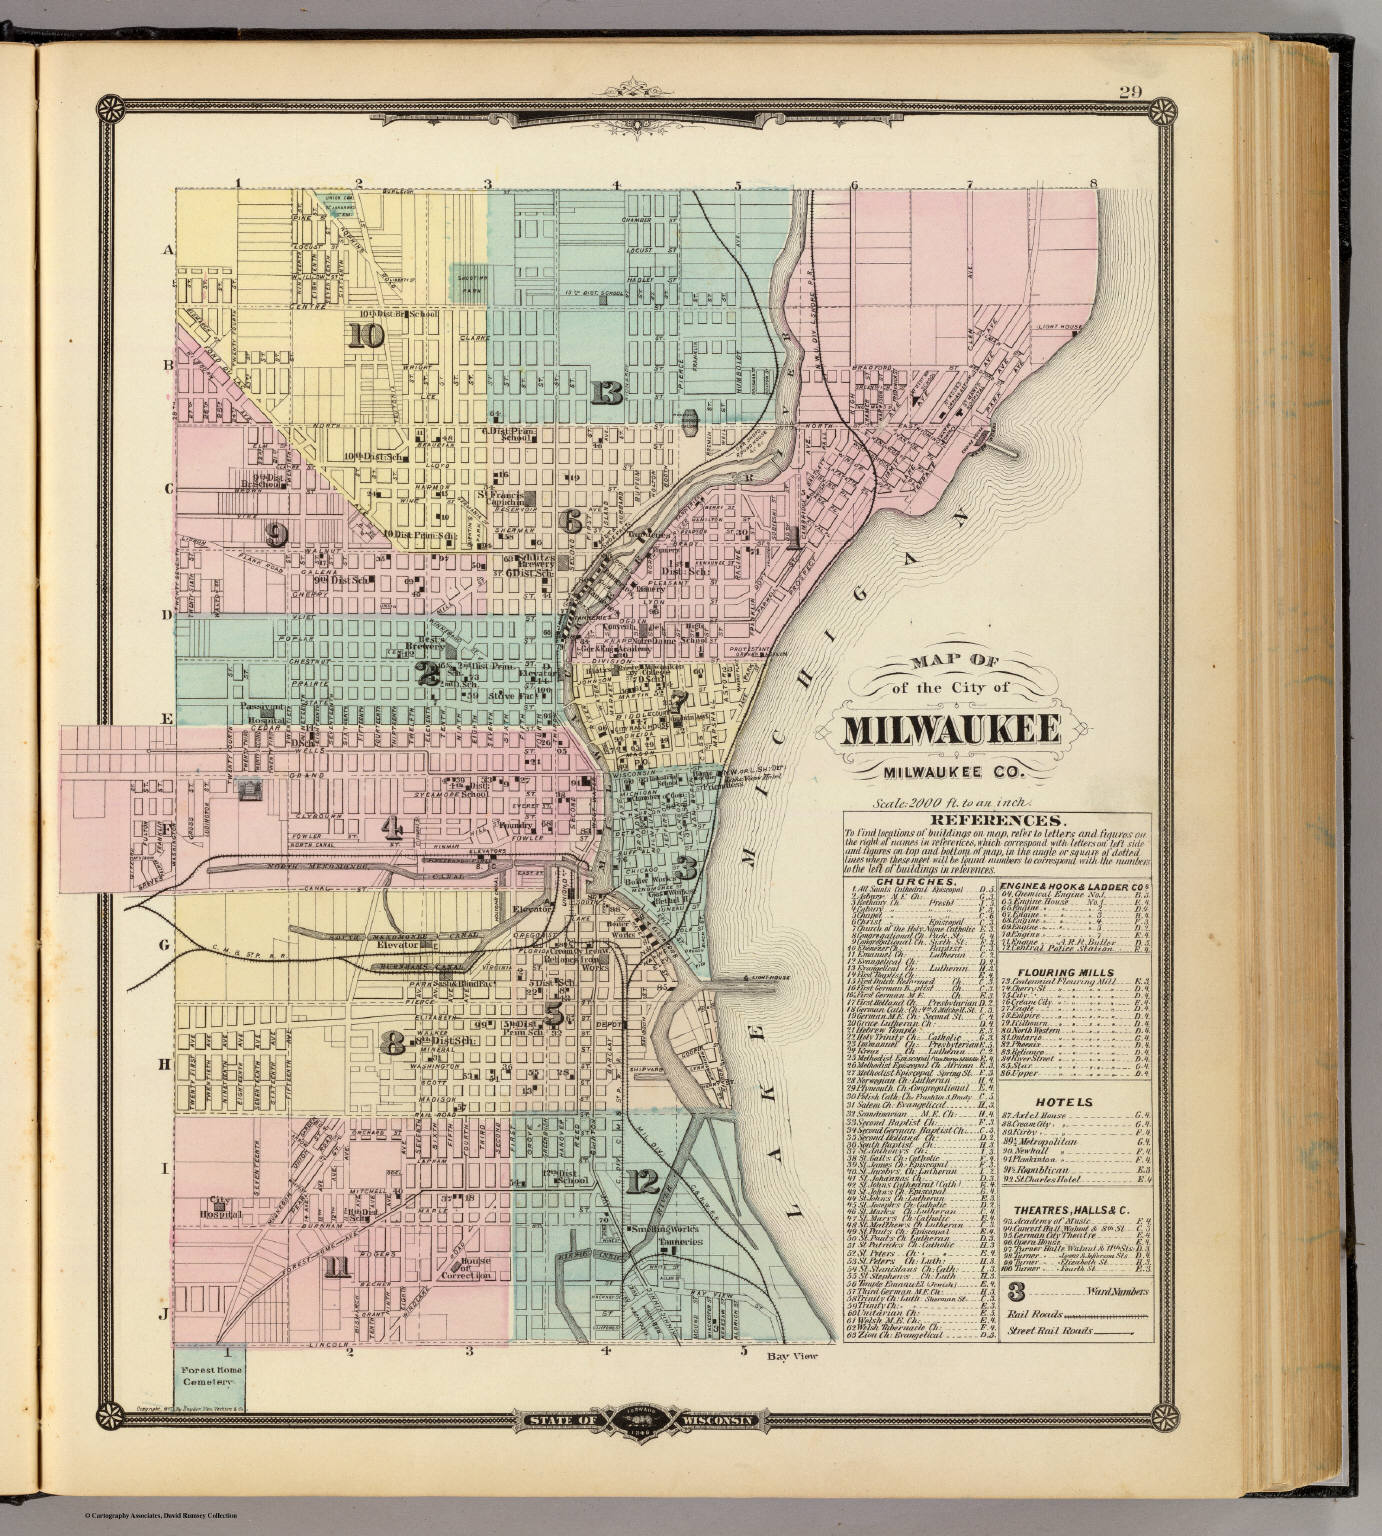 Map of the City of Milwaukee, Milwaukee Co. - David Rumsey ...